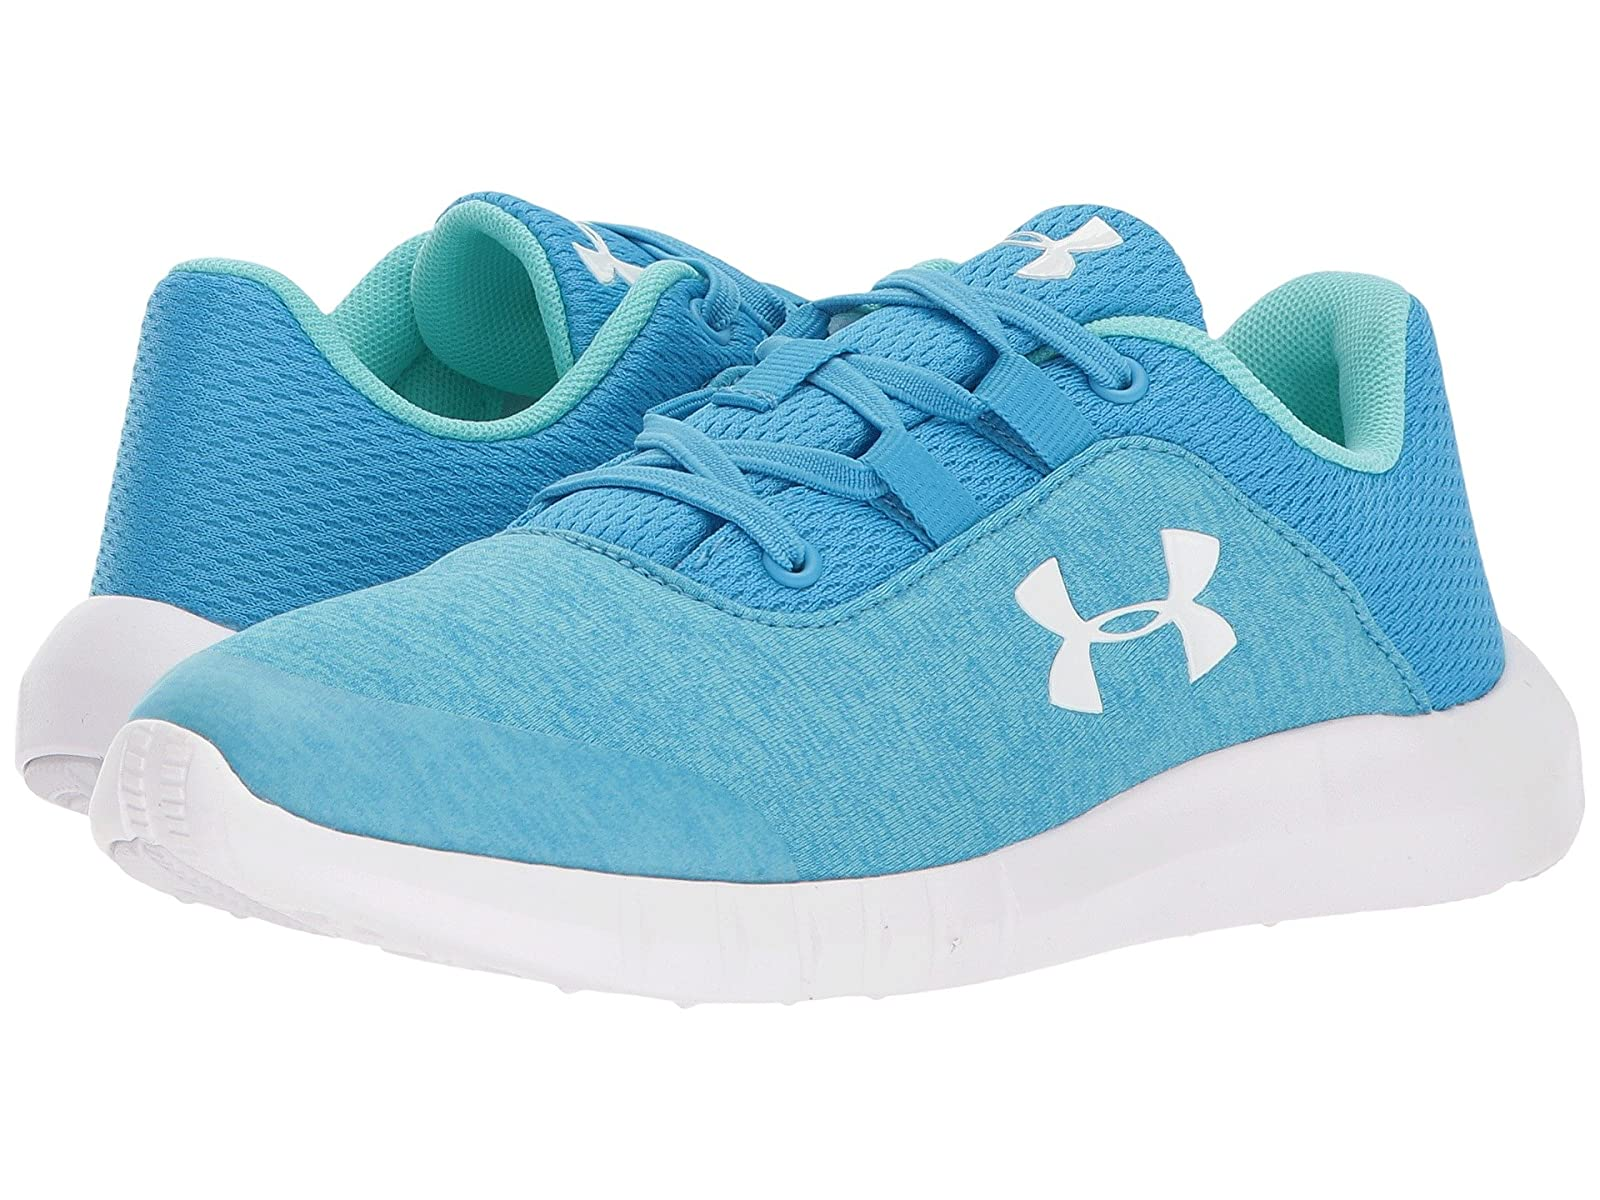 Under Armour Kids UA Mojo (Little Kid)Cheap and distinctive eye-catching shoes